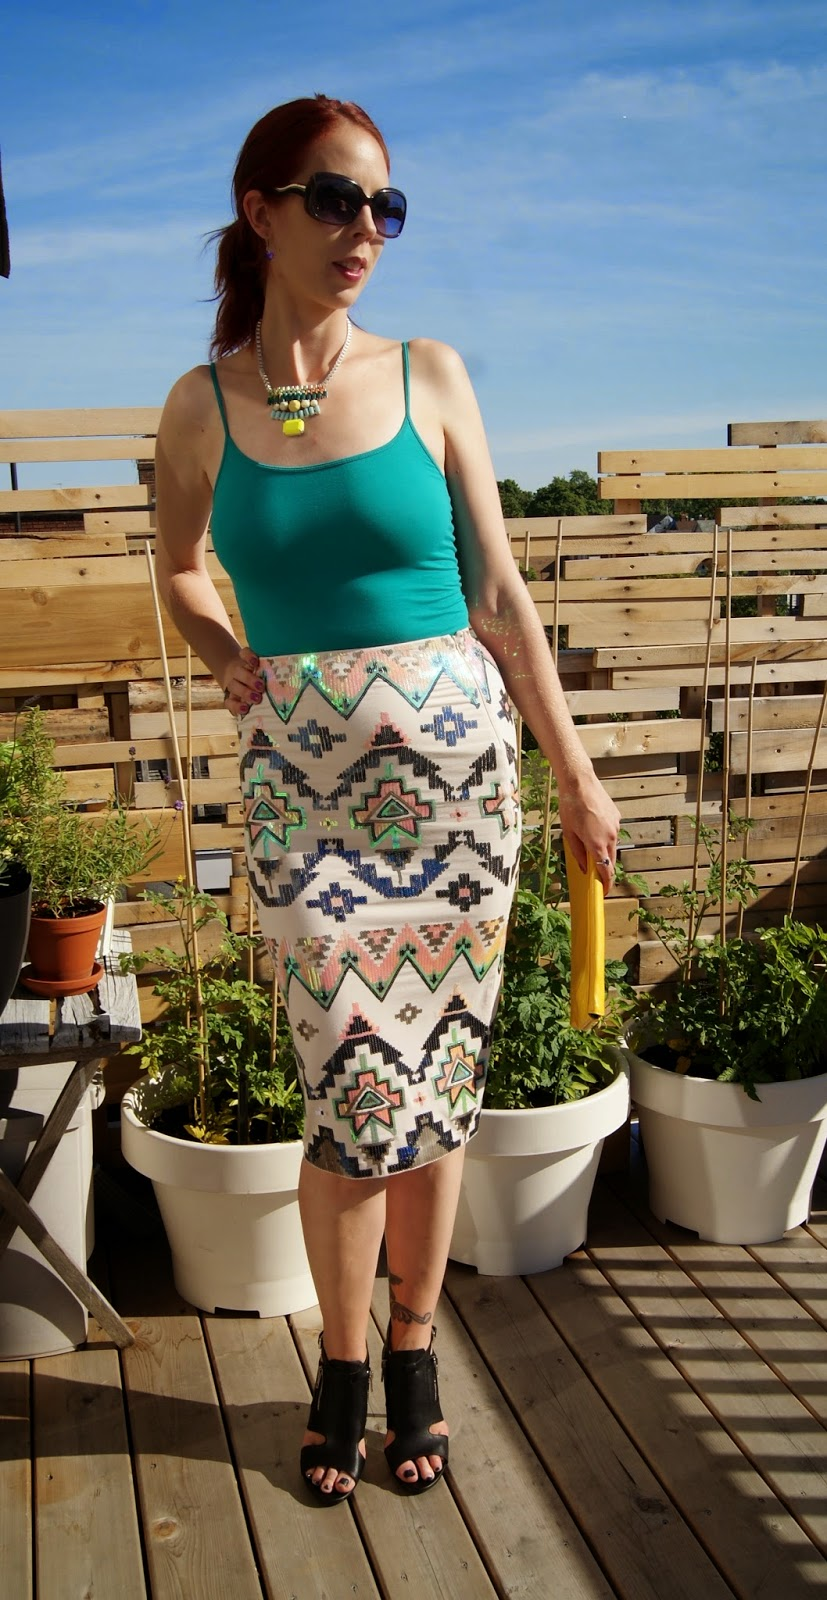 Aztec Sequin Embellished Midi Skirt from Express, Turquoise Cami and Shoes from Forever 21, Shop For Jayu Necklace and Bracelet, Vintage Yellow Clutch, Fashion, Style, Styletips, Pencil, Versatile, Melanie_Ps, The Purple Scarf, Toronto, Ontario, Canada, Shopping